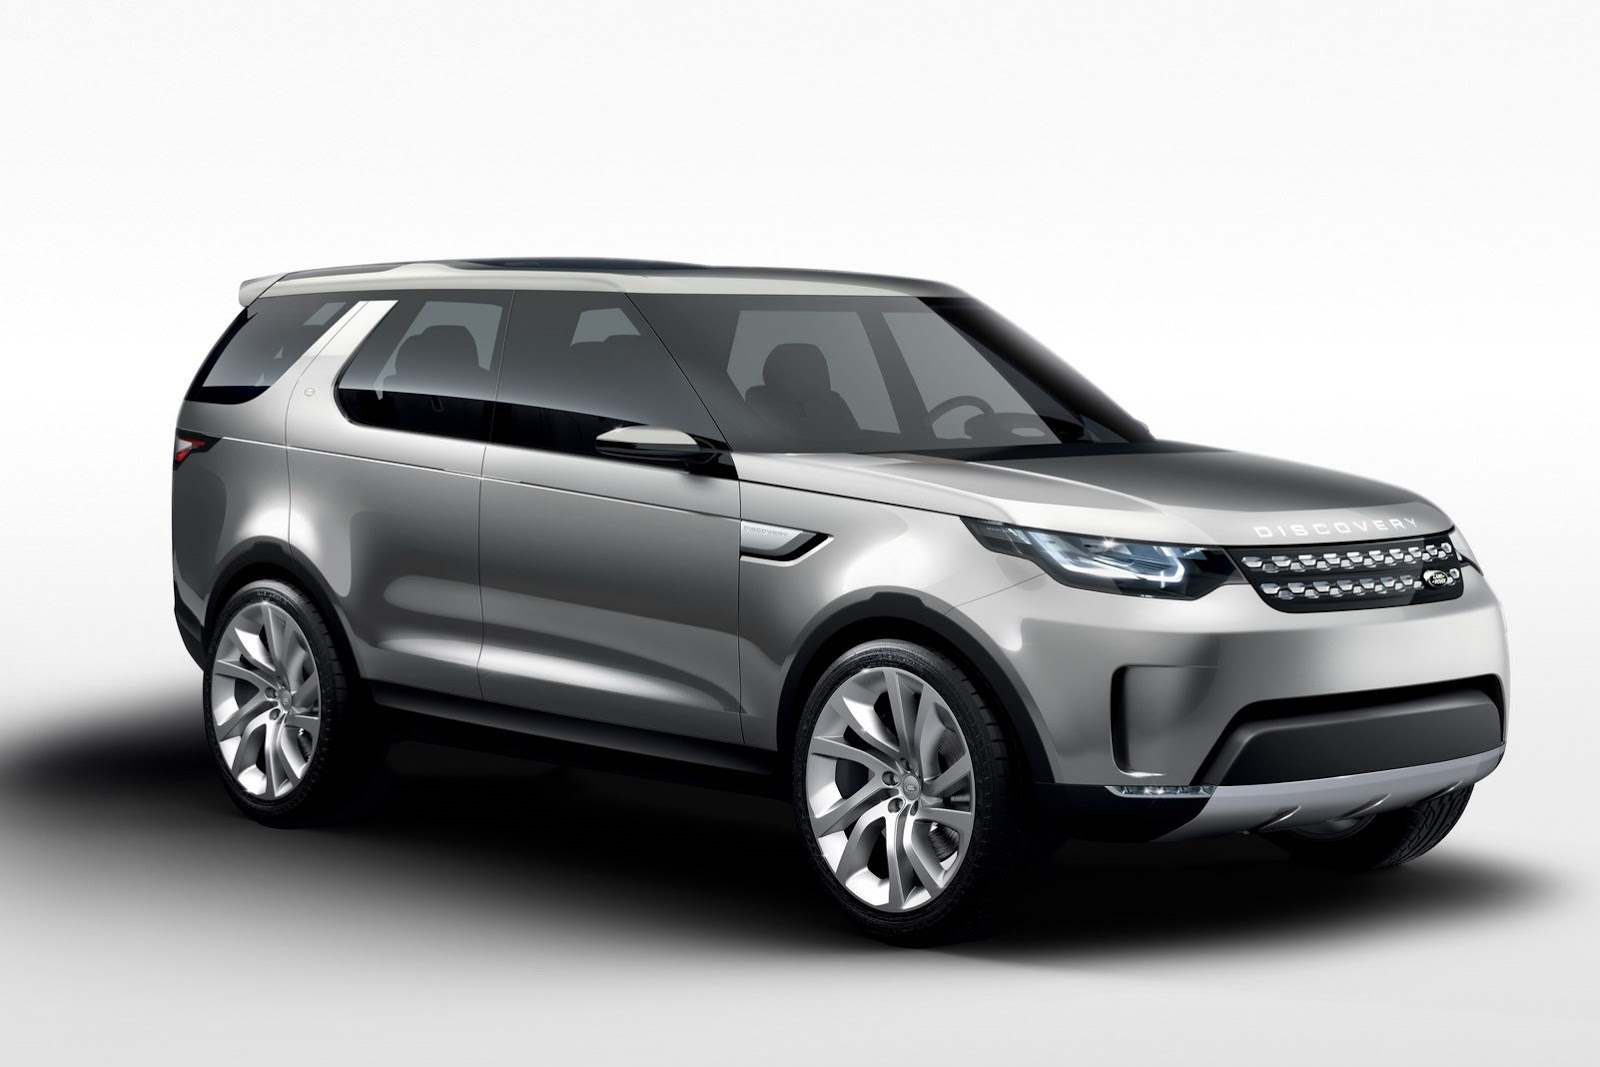 official land rover discovery vision concept gtspirit. Black Bedroom Furniture Sets. Home Design Ideas